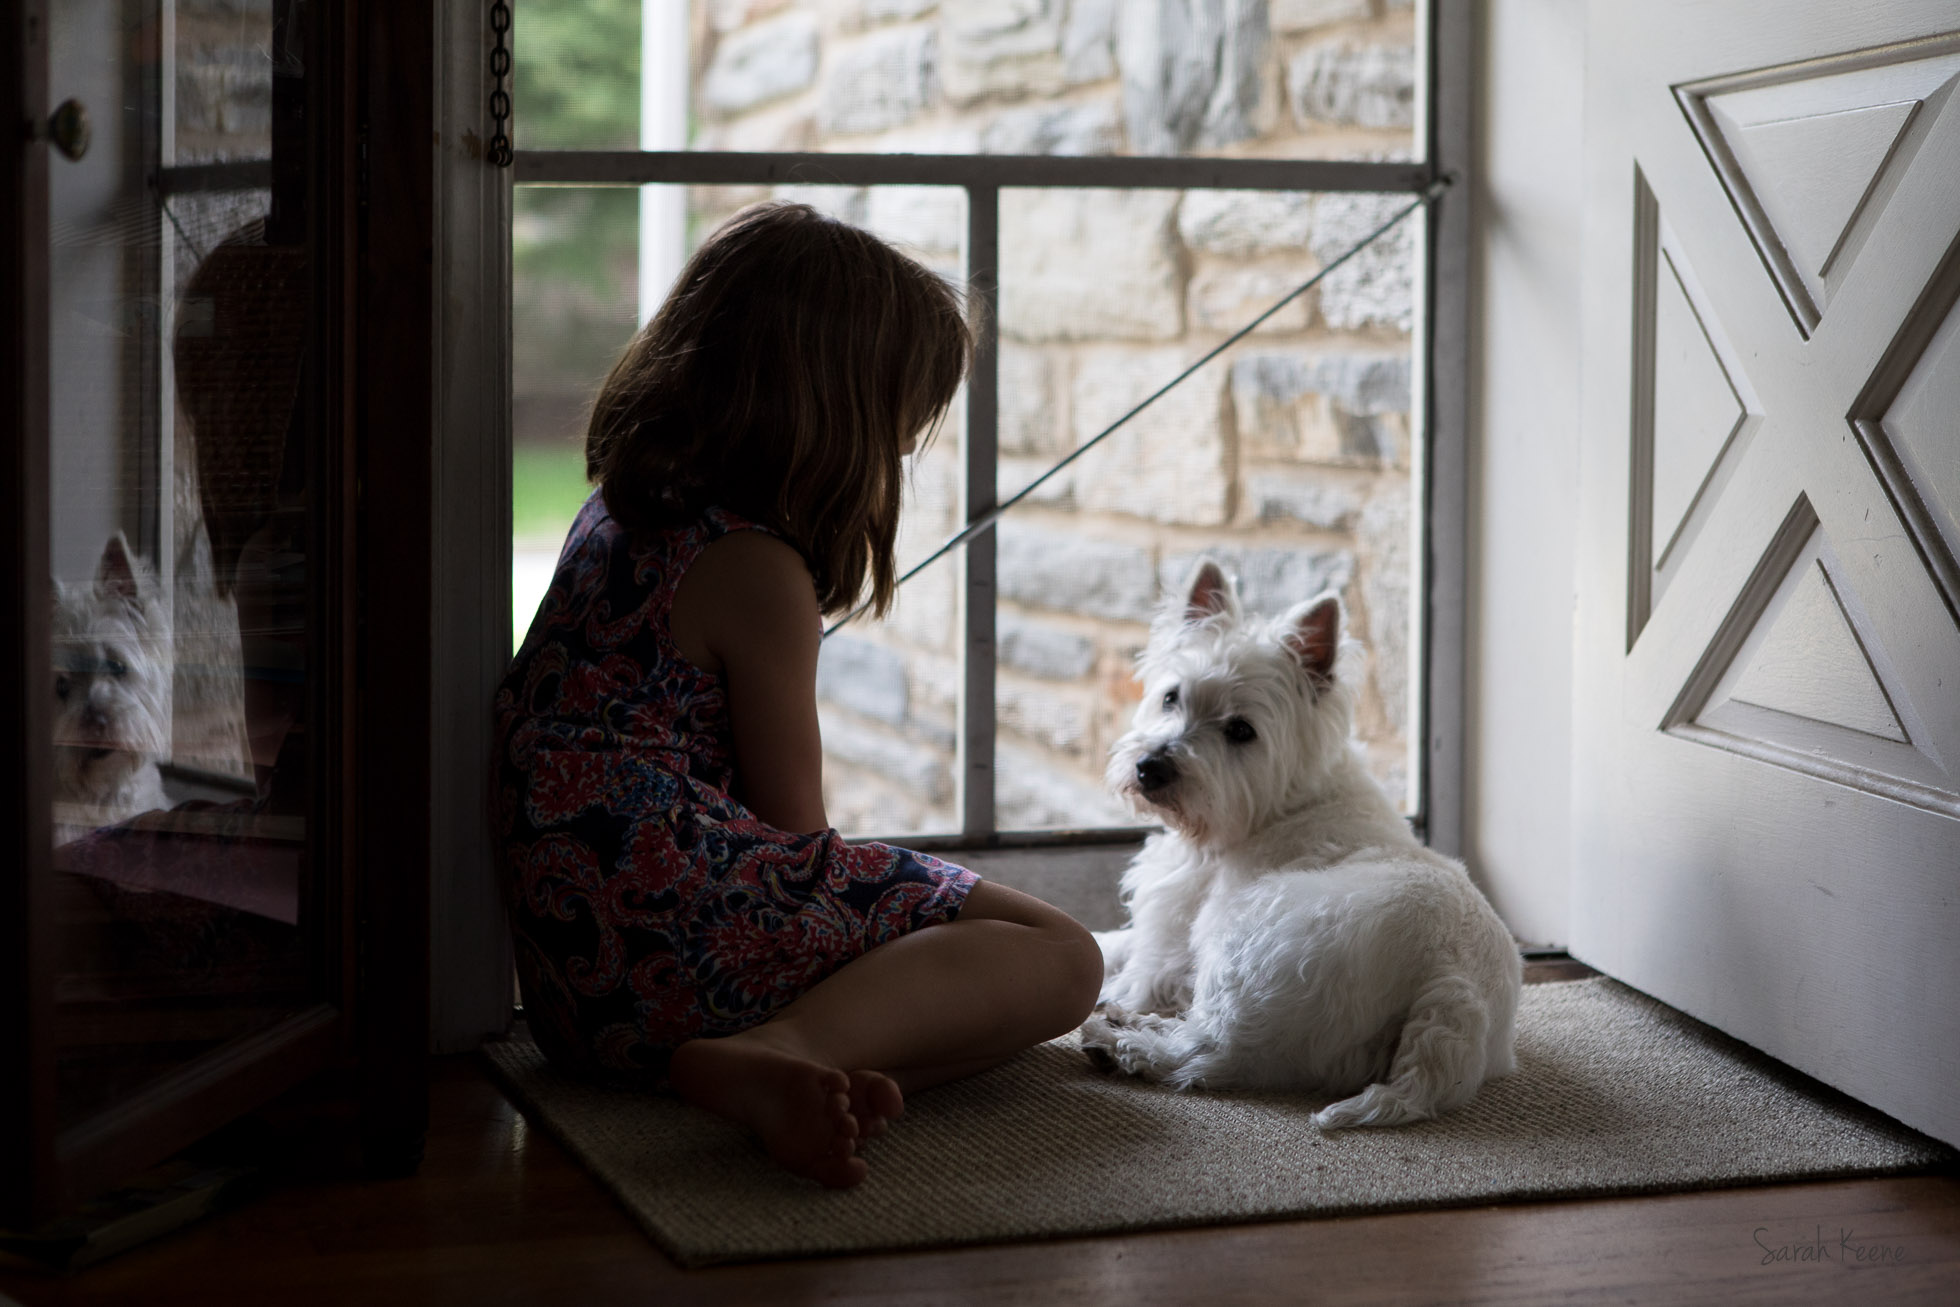 Child with West Highland Terrier by open door